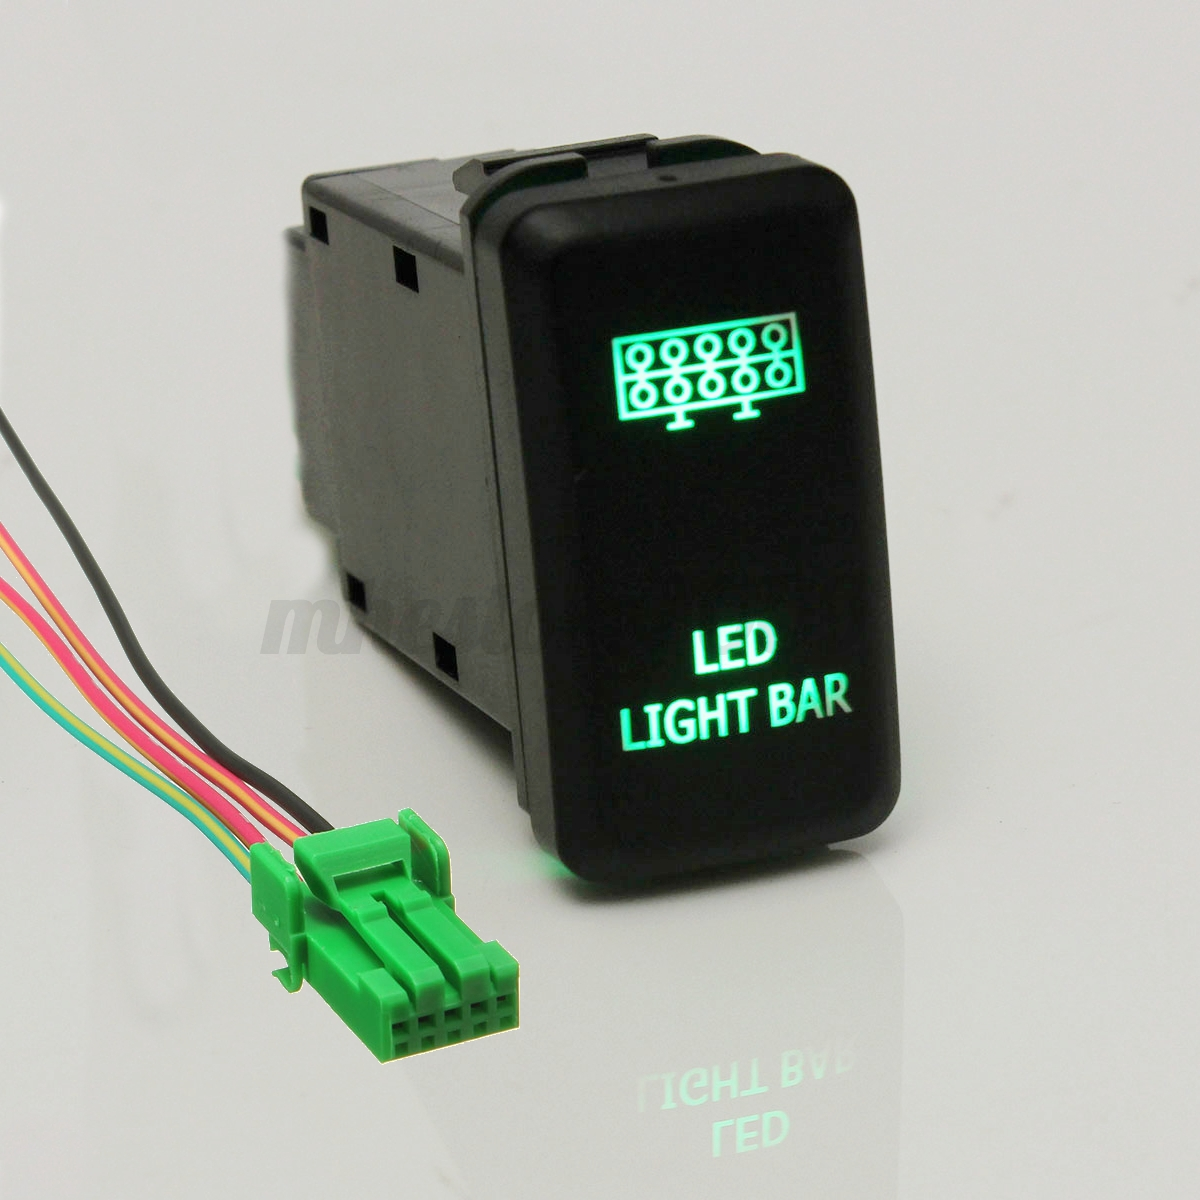 Image Result For Dc Wire Size Chart Wiring T Fj Cruiser 1975 Toyota Land Diagram Is Loading Green Led Light Bar Push Switch 12v Location Milwaukee Wi